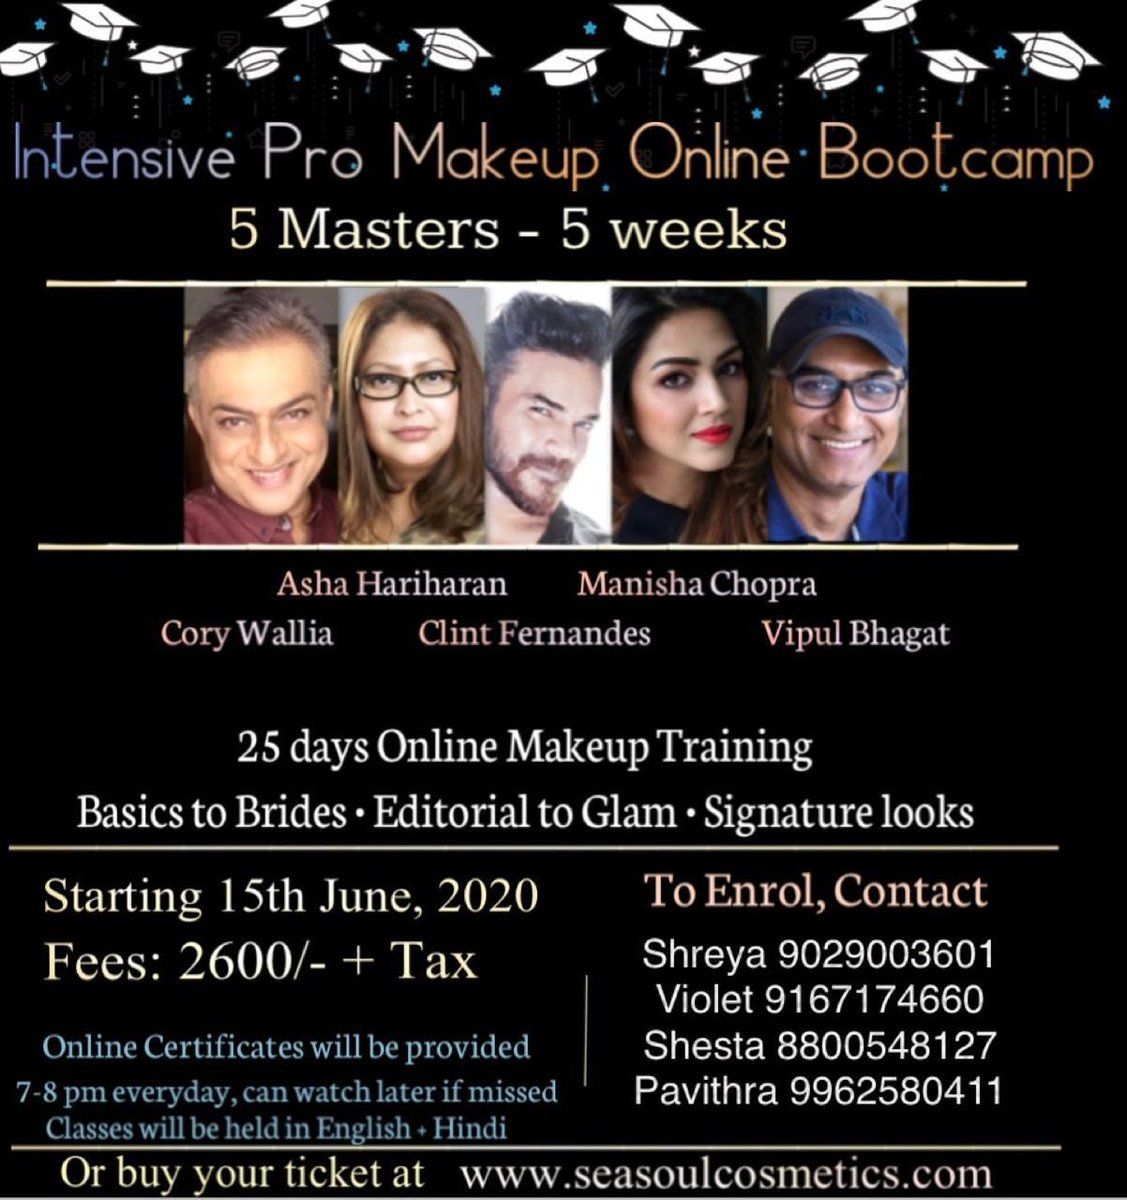 5 makeup masters coming together bringing you the best of knowledge and creativity during this lockdown.  The training will be held by experts including #AshaHariharan #CoryWalia #ClintFernandes #ManishChopra #Vipulbhagat  To know more visit the website mentioned above pic.twitter.com/G7qBwMOMeD